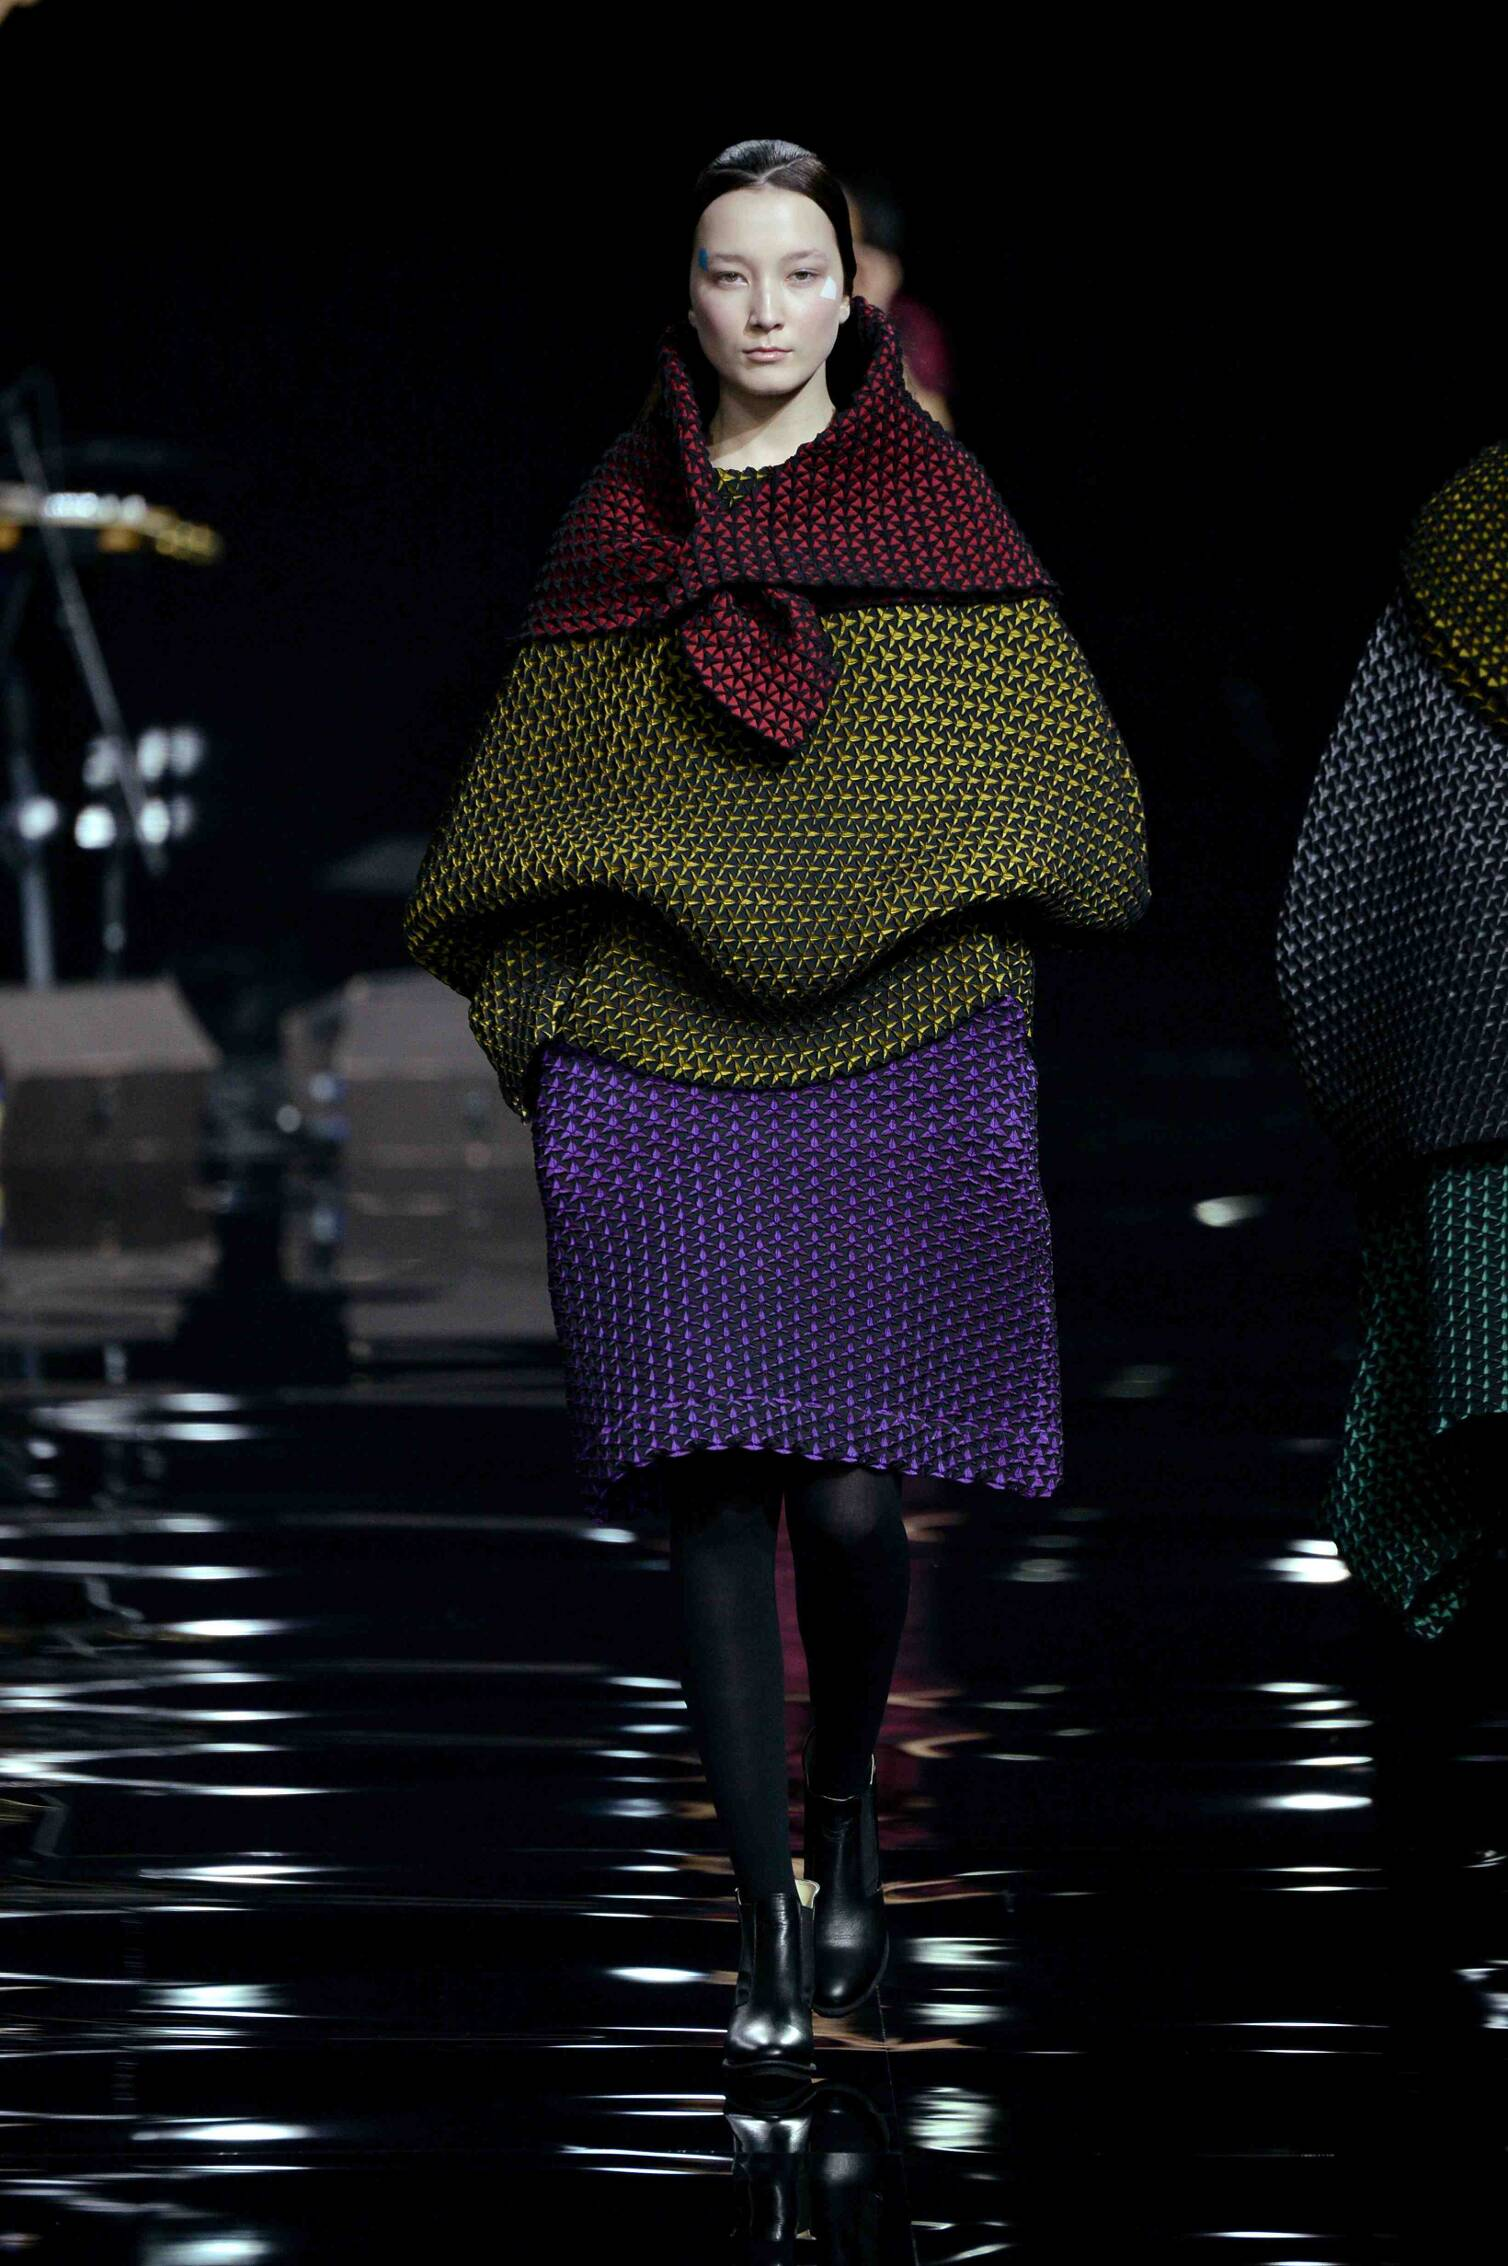 Issey Miyake Fall Winter 2015 16 Womenswear Collection Paris Fashion Week Fashion Show